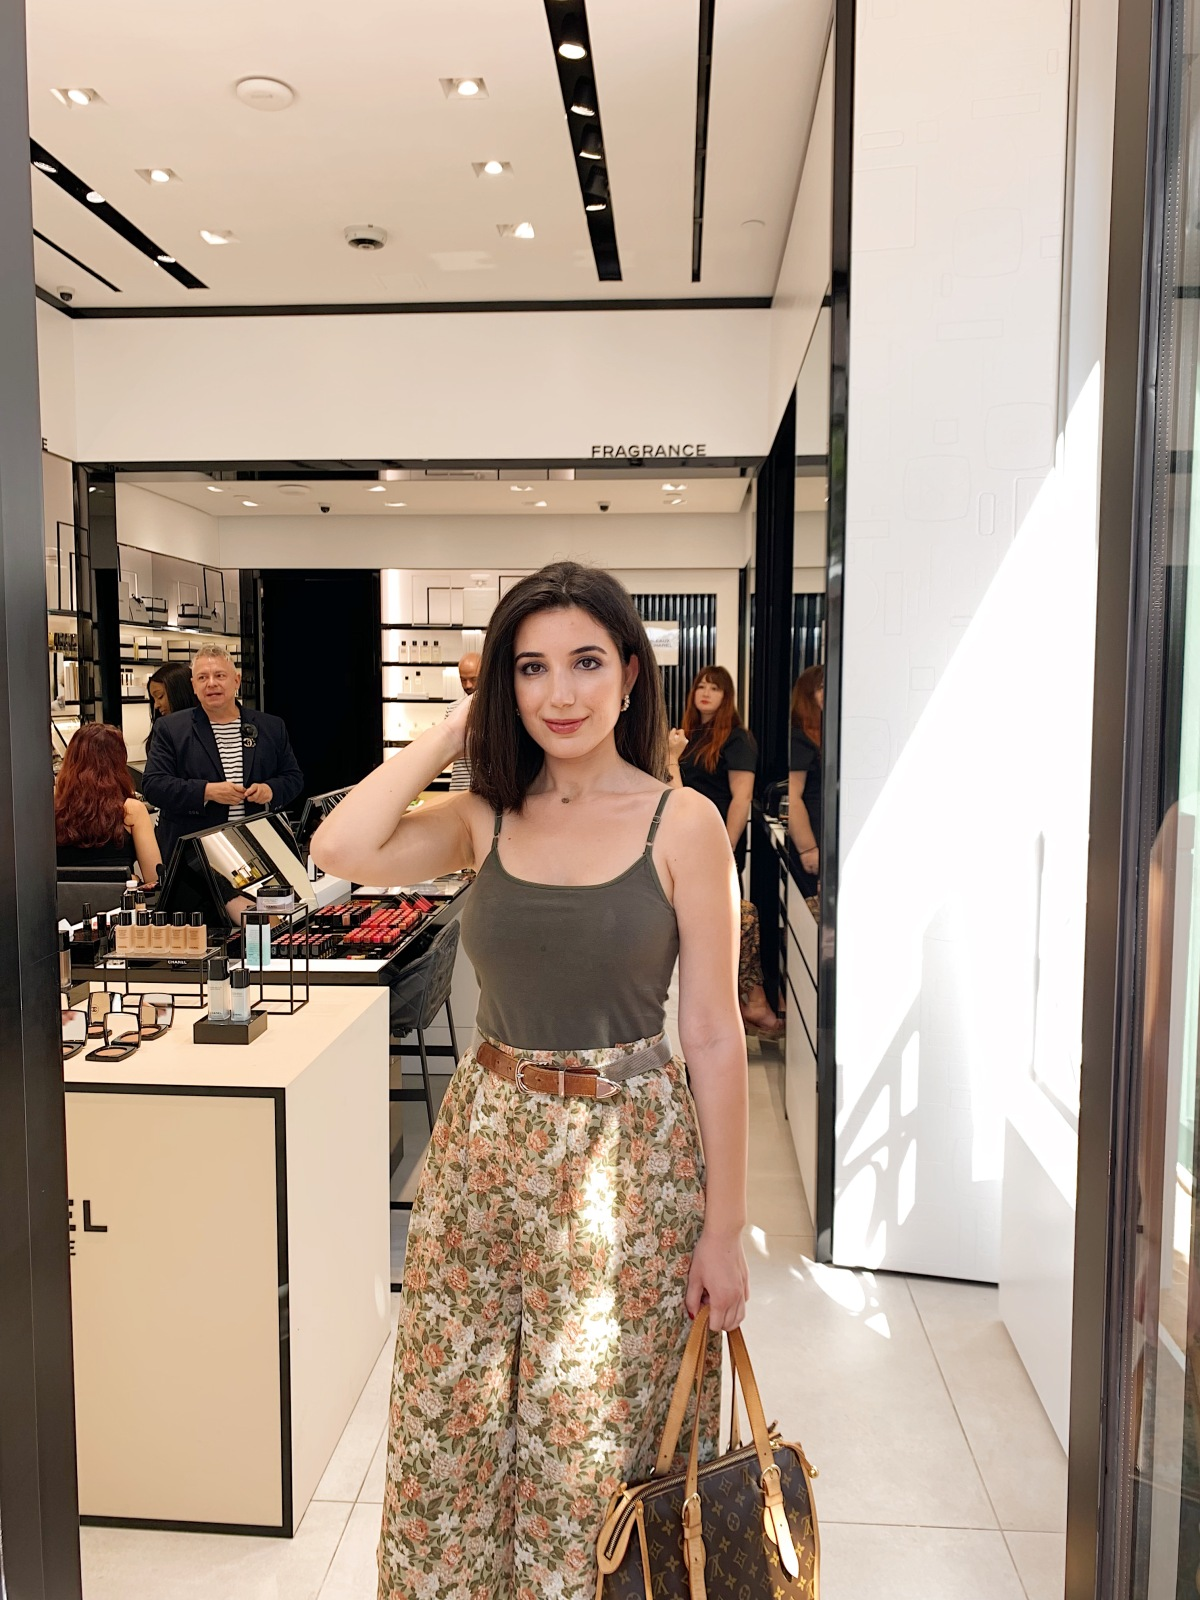 Chanel Beauty, Chanel perfume, Chance by Chanel, Palisades Village, Pacific Palisades shopping, beauty event, LA events, style blogger, beauty blogger, lifestyle blogger, lookbook, ootd, Chanel, vintage, luxury, self care, Chanel A La Plage